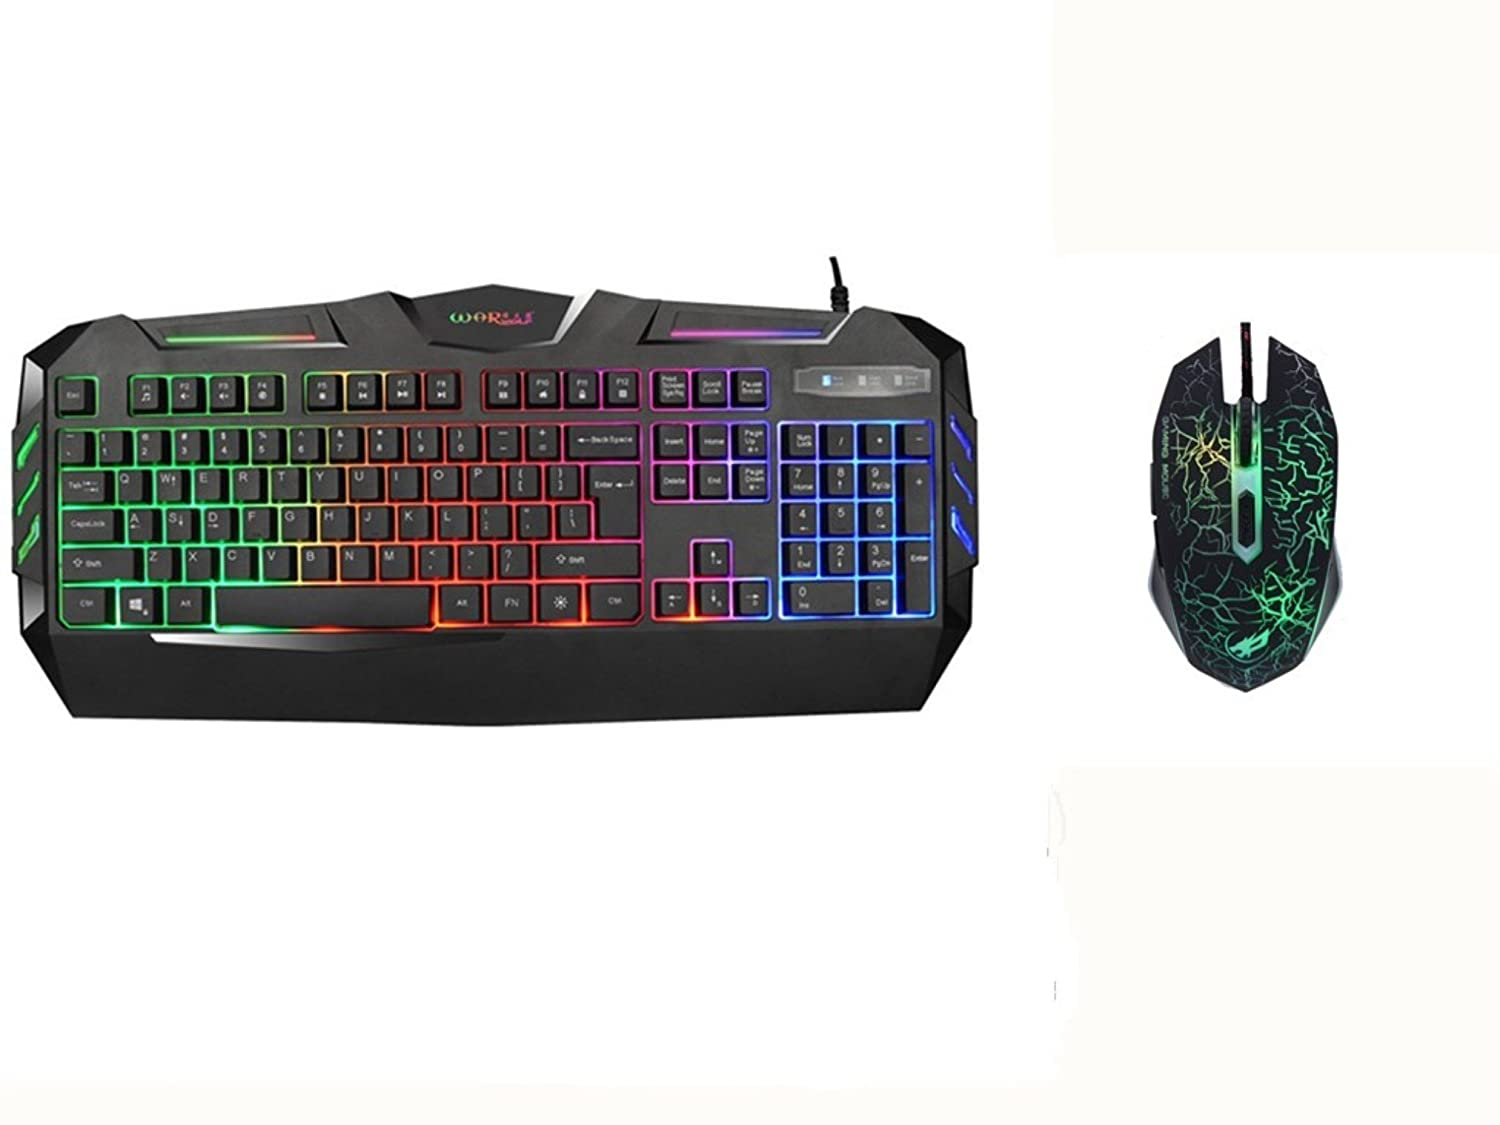 Warwolf K3 Usb Wired Optical Gaming Keyboard With Keybiard Backlight 104 Key Number Computer And Mouse Combo Computers Accessories